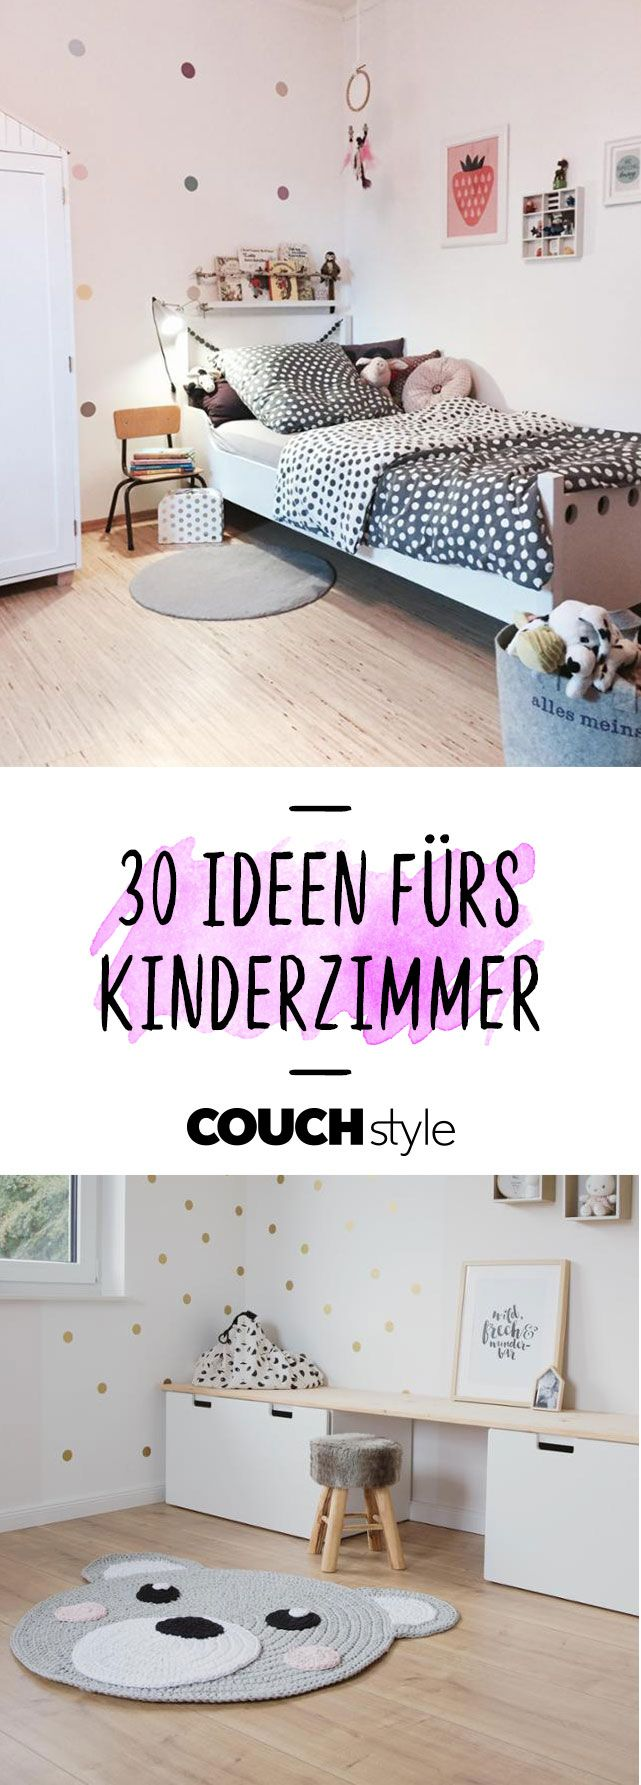 kinderzimmer gem tlich einrichten so geht 39 s kinderzimmer pinterest kinderzimmer. Black Bedroom Furniture Sets. Home Design Ideas